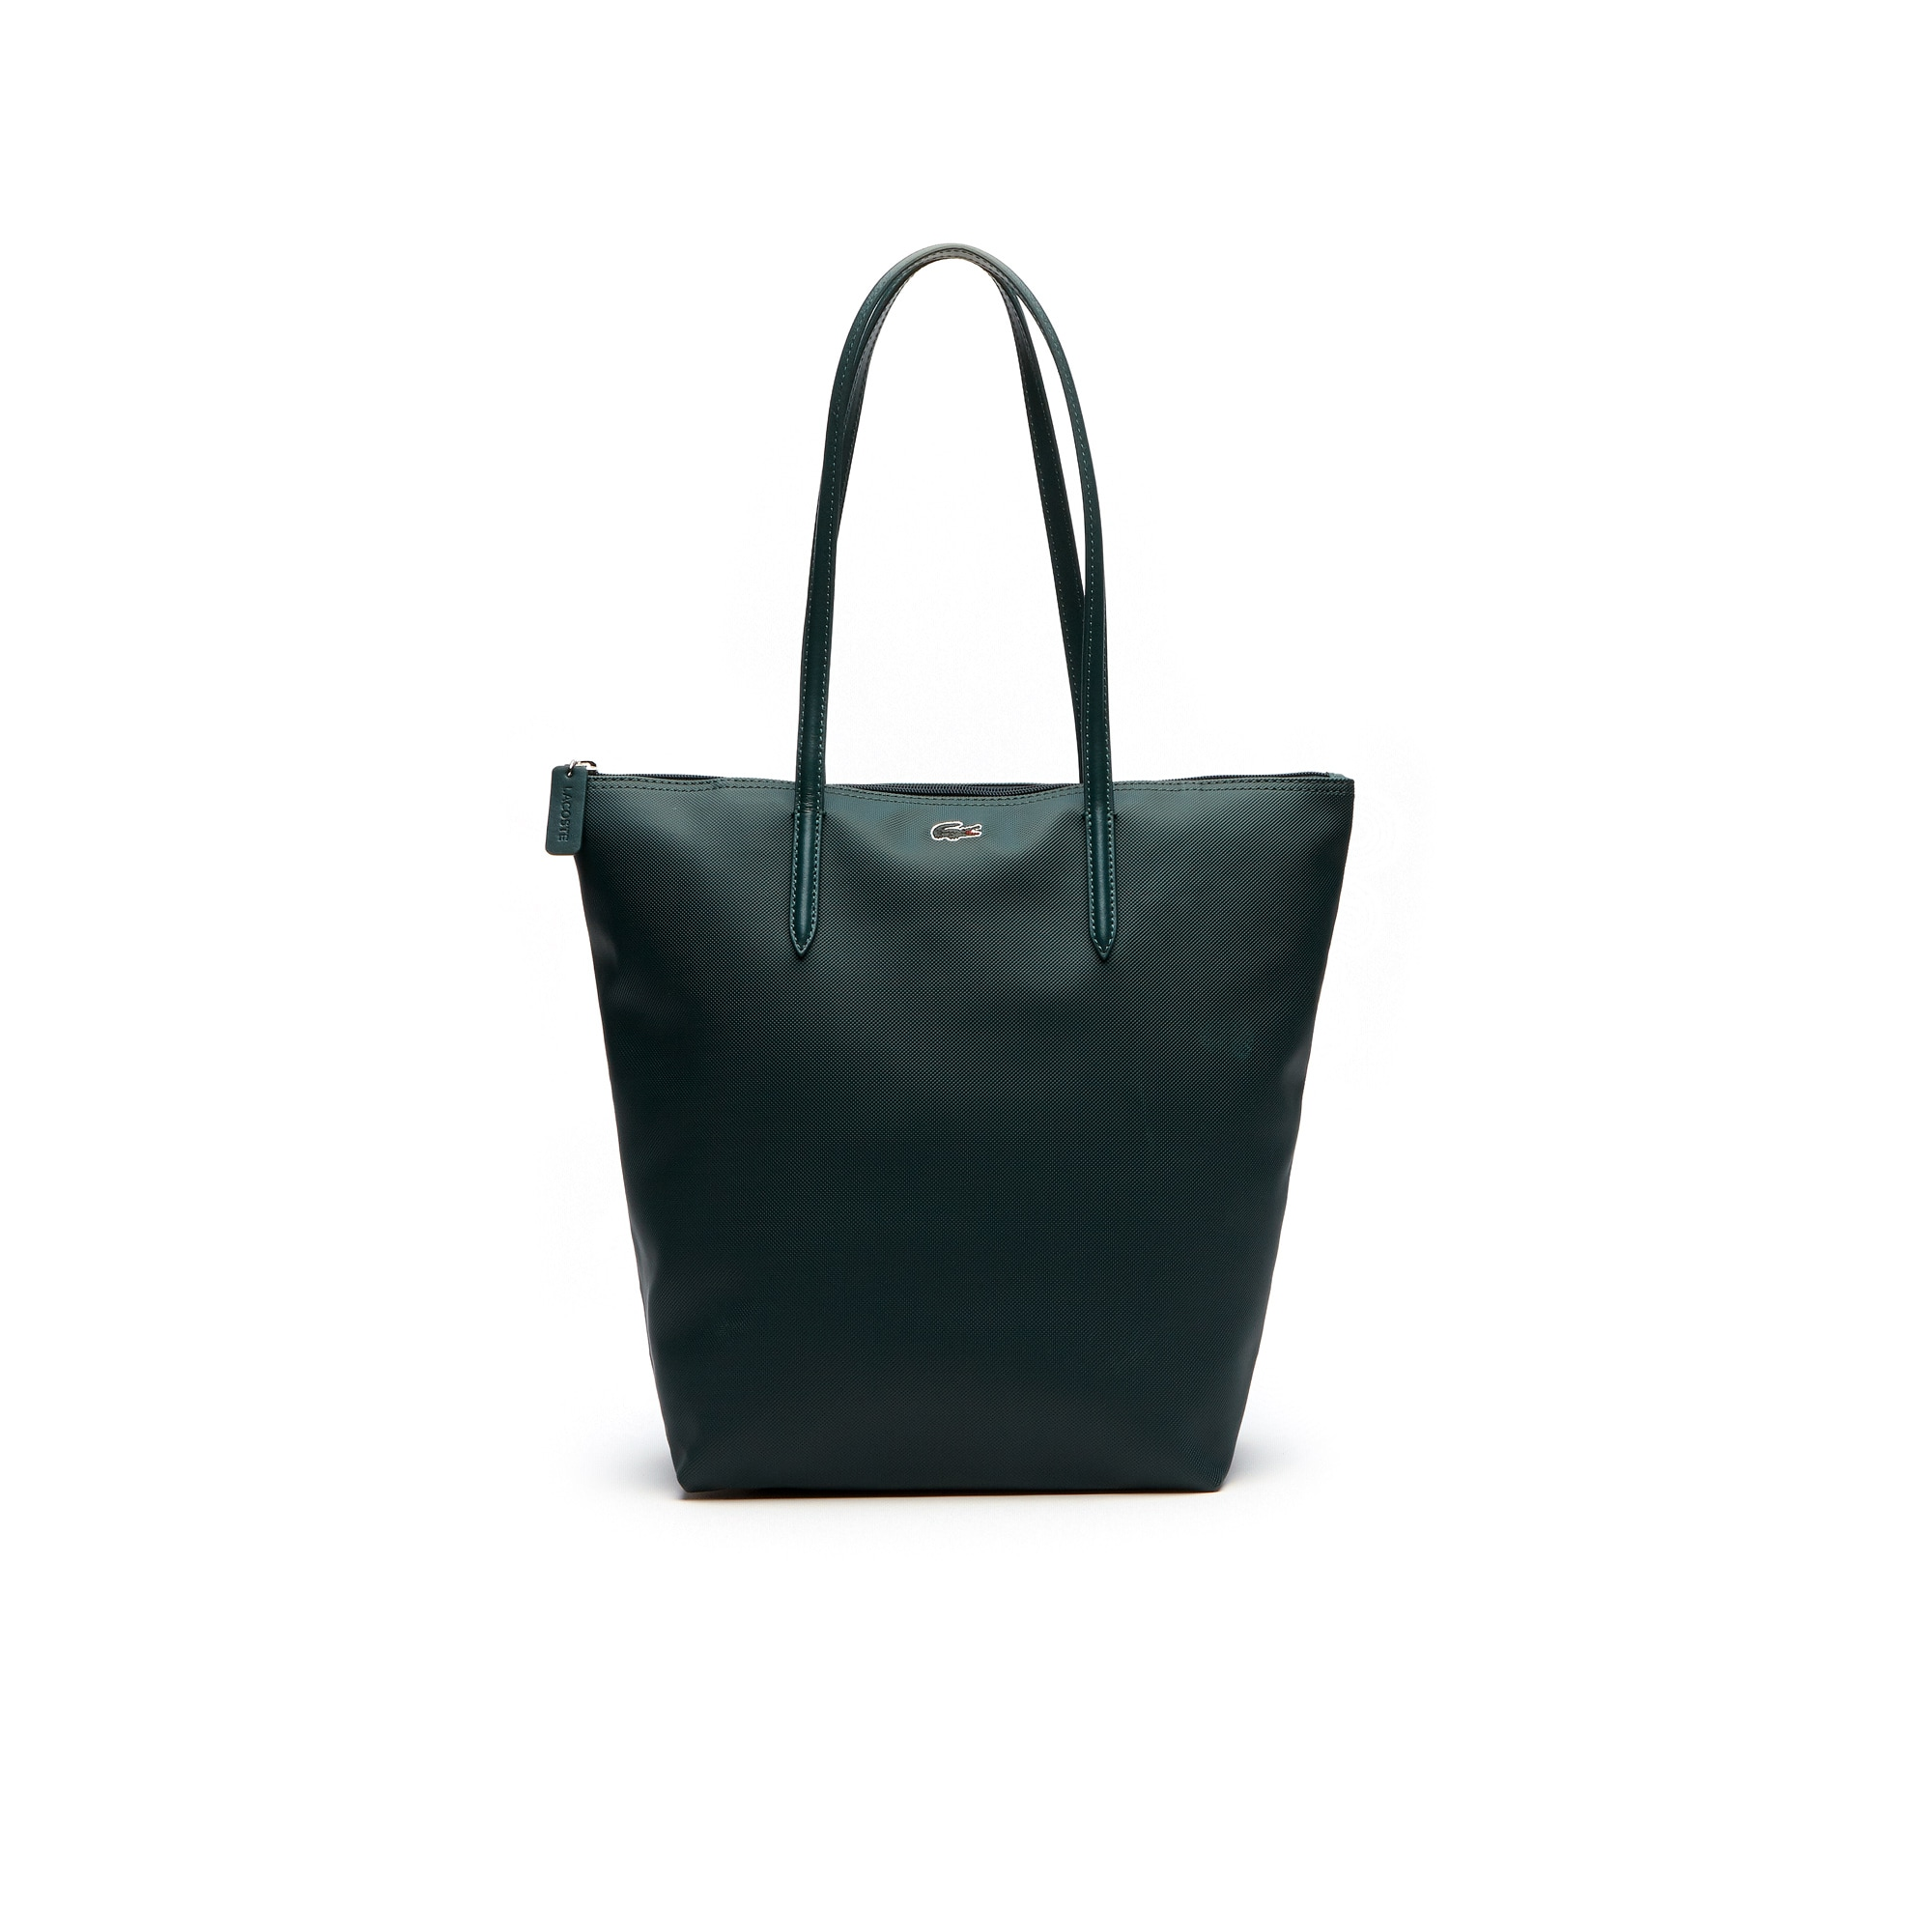 Shopping Bag Vertical L.12.12 Concept